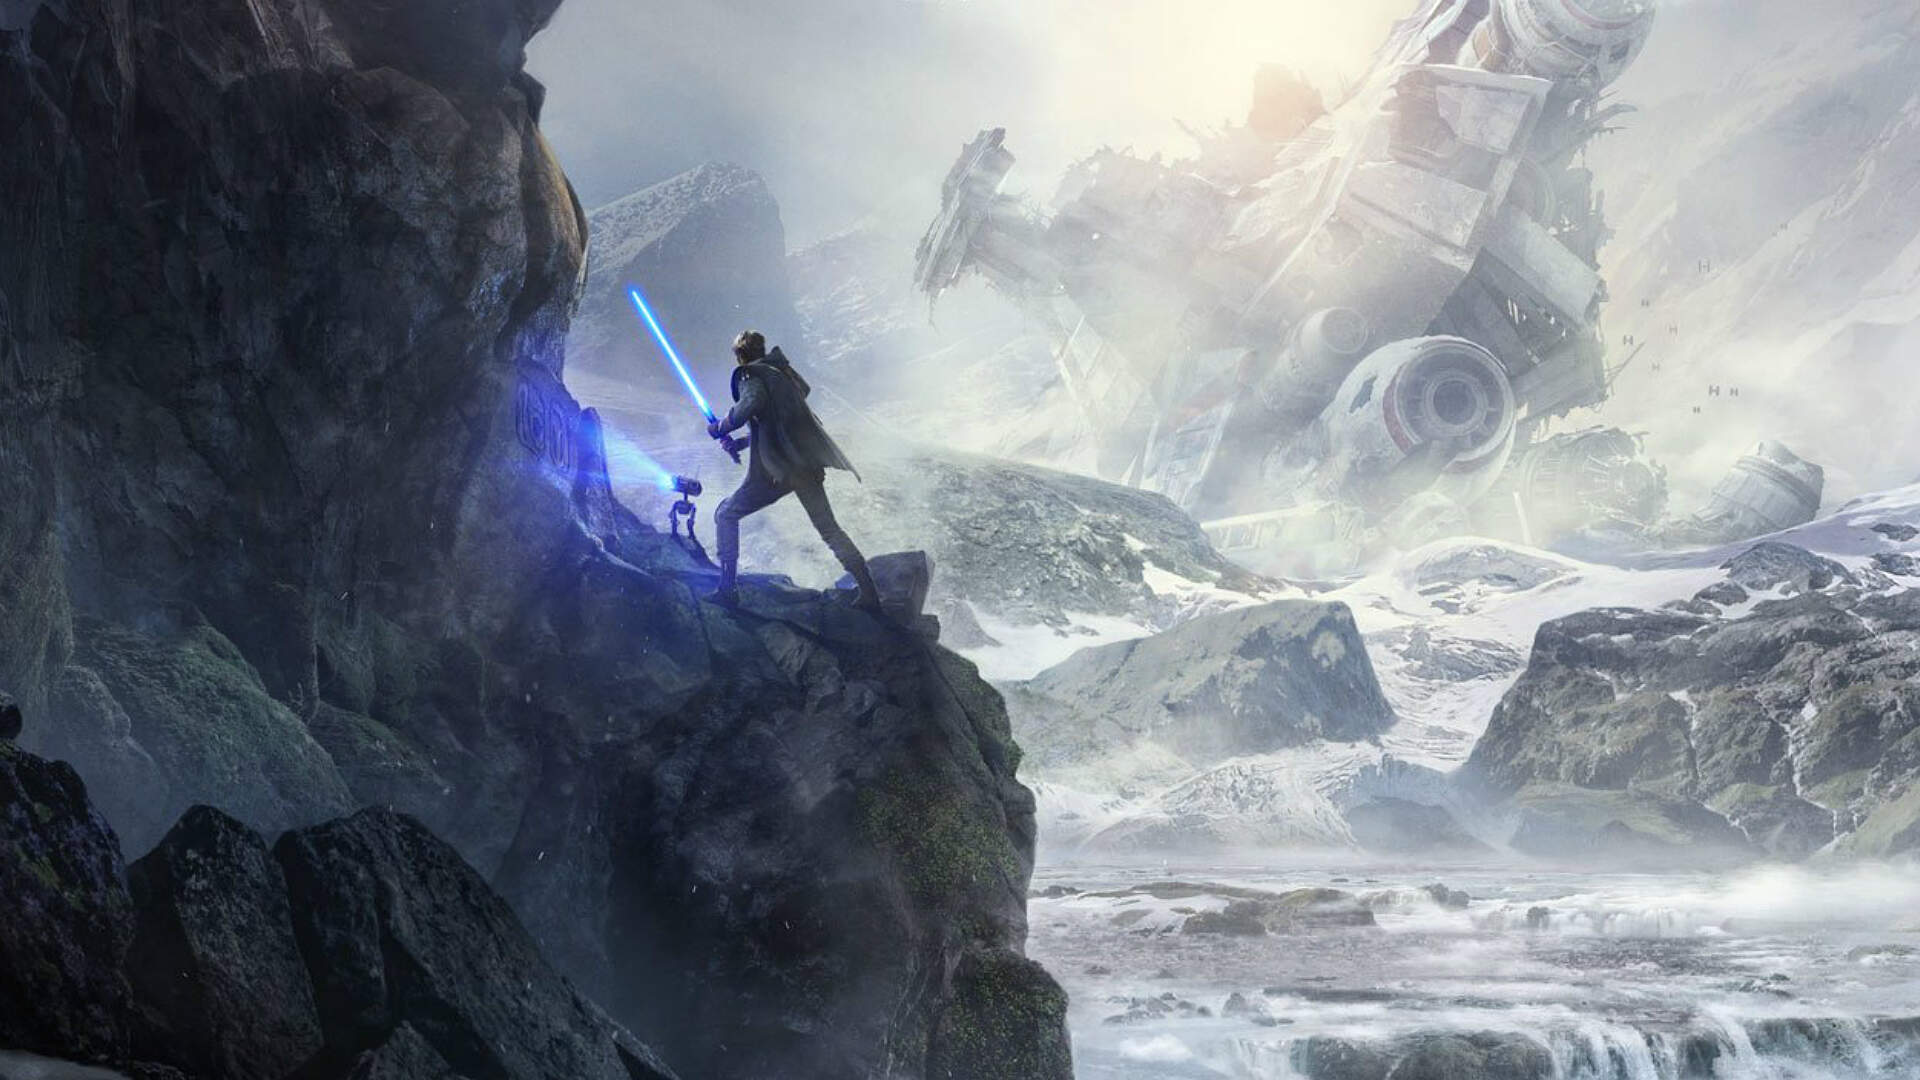 Star Wars Jedi: Fallen Order's Full E3 Demo Released, Shows Exploration and Crew Interactions